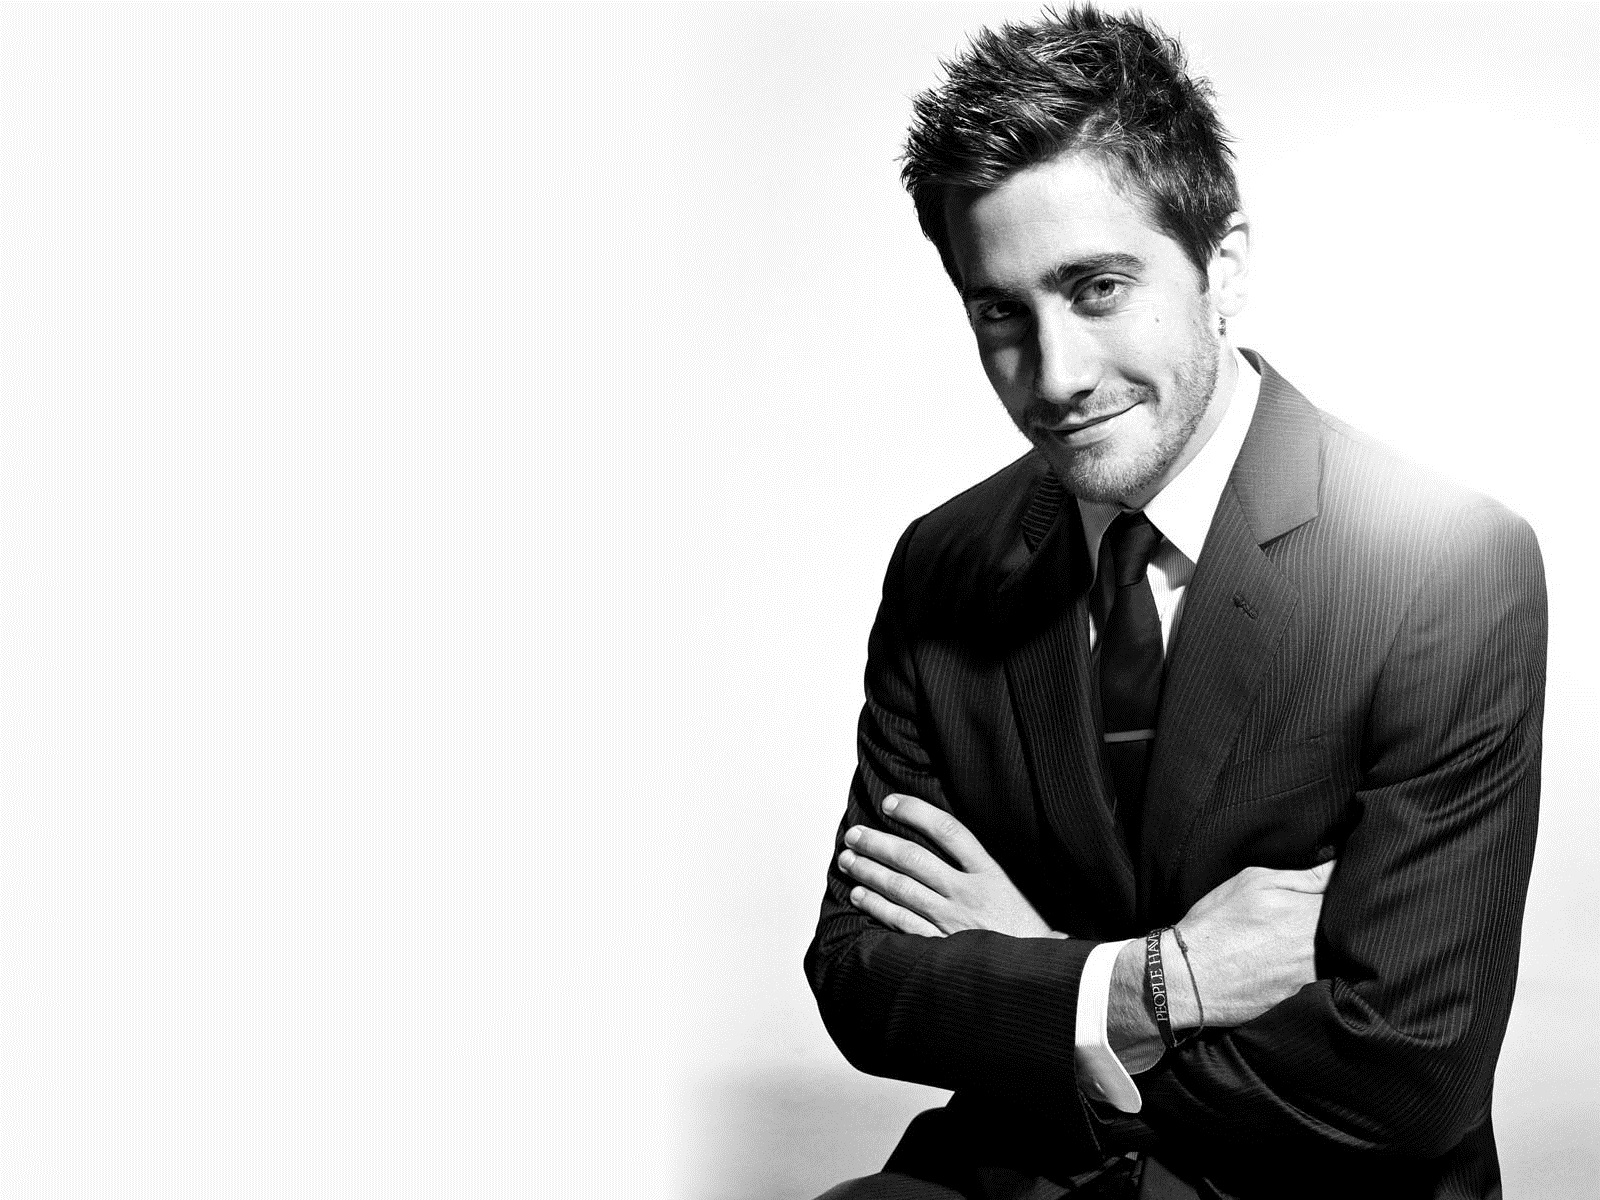 jake gyllenhaal computer wallpaper 50417